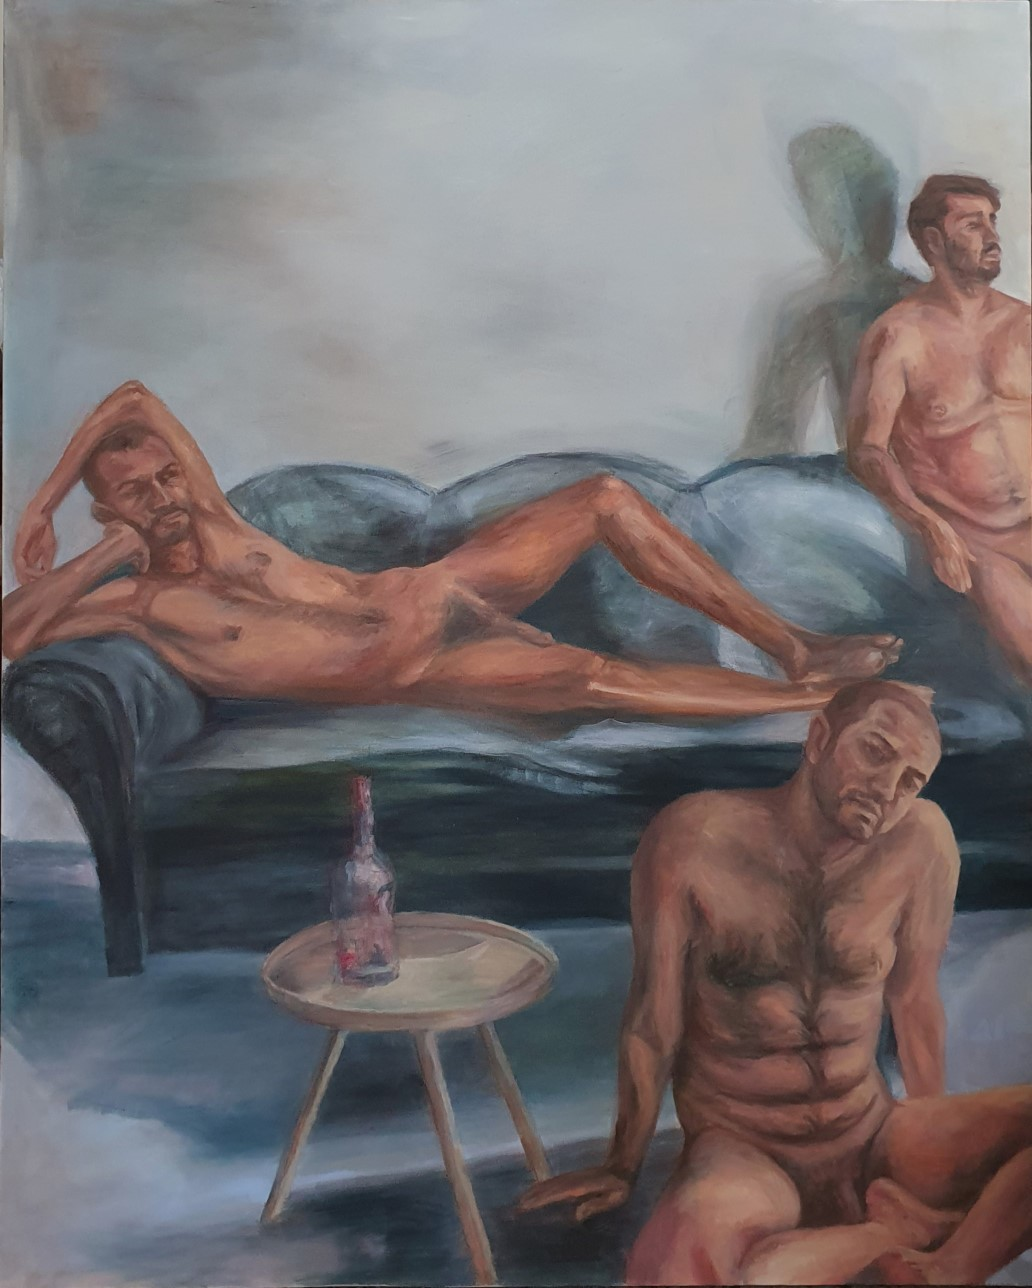 The quarantine Magnum Opus<br></br>59.6 x 48 inches (151 x 122 cm)<br></br>Oil on canvas<br></br>January, 2021